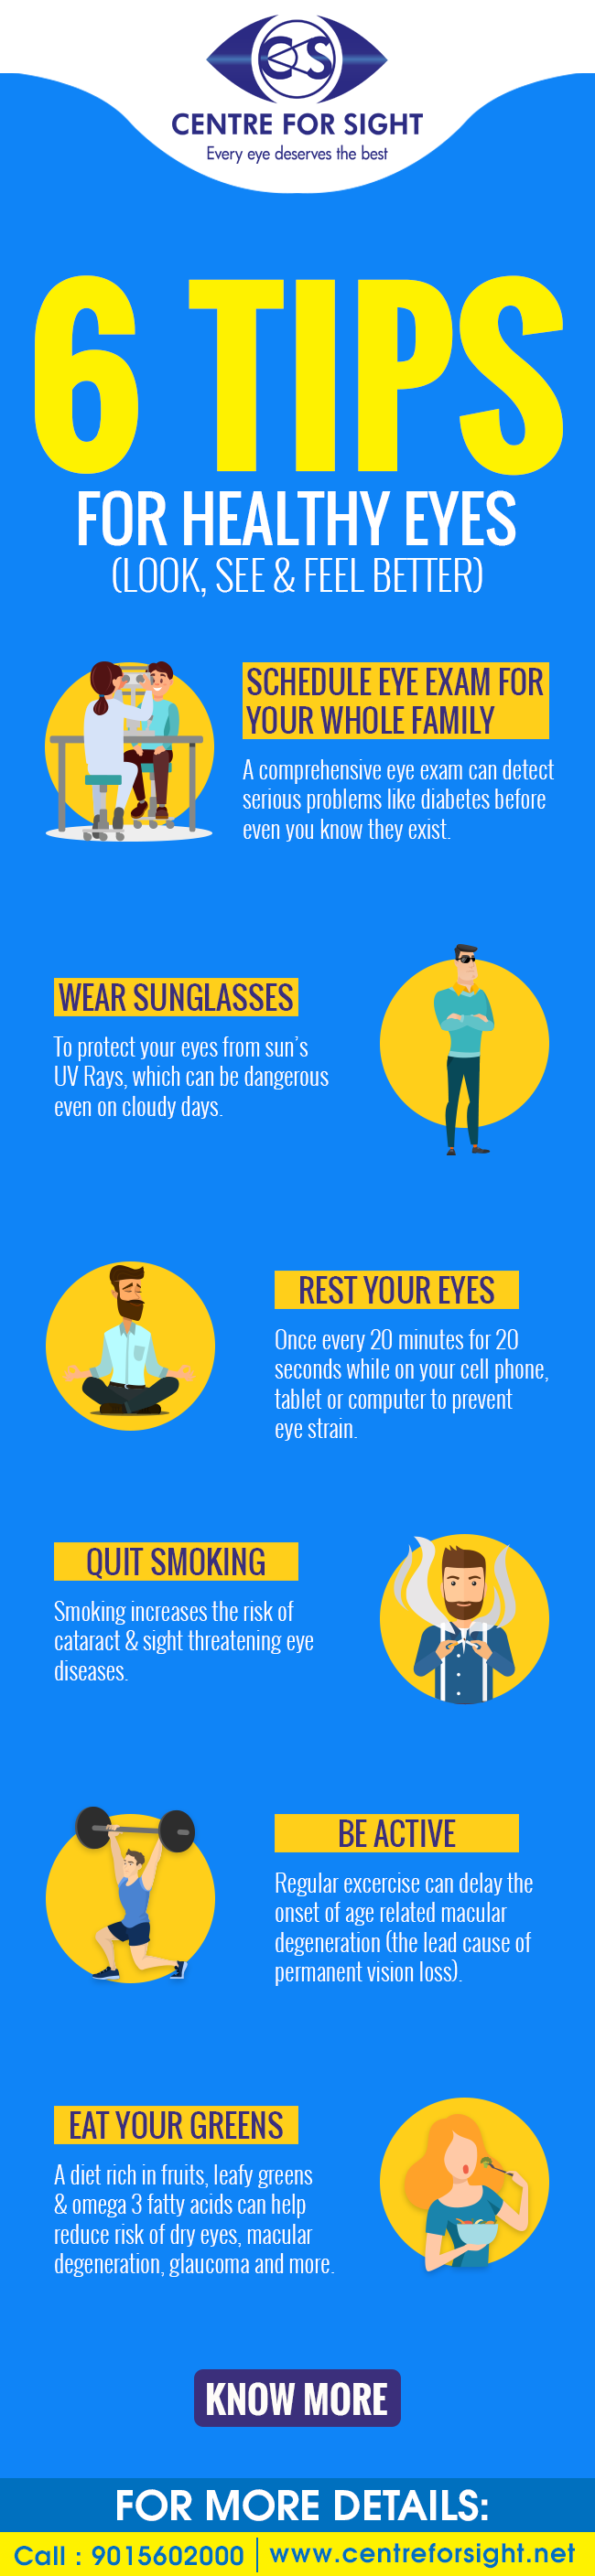 6-tips-for-healthy-eyes-infographic-plaza